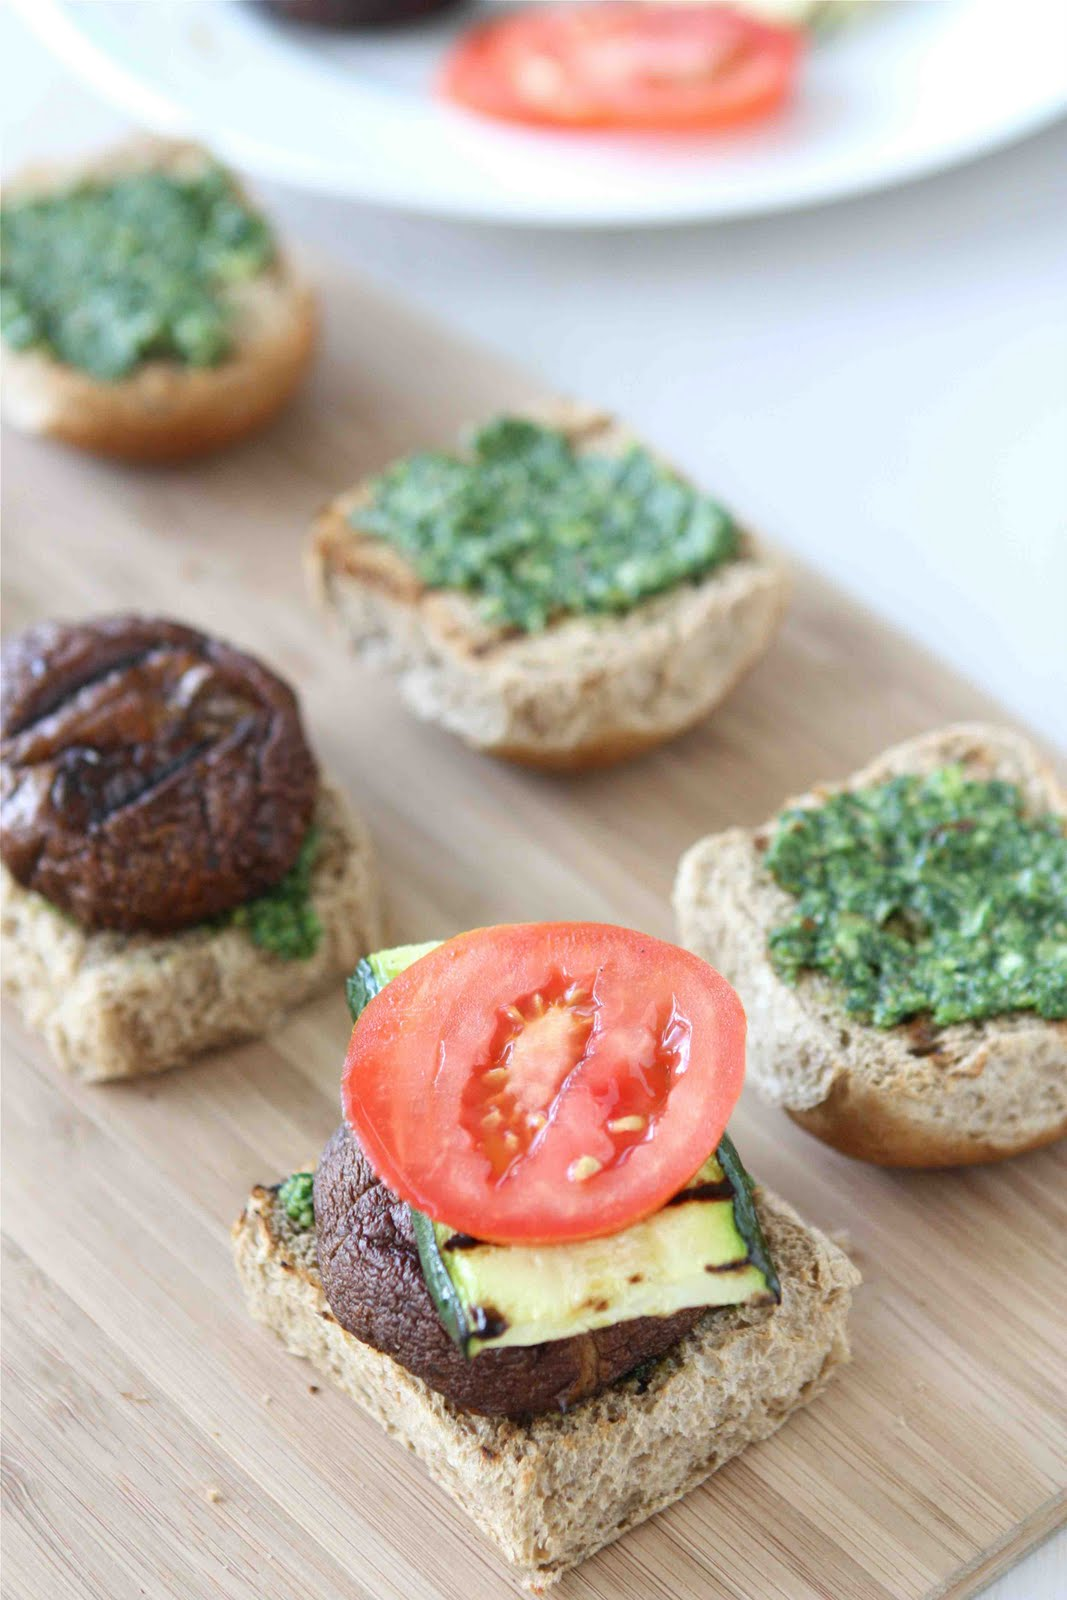 Grilled Mushroom Sliders with Zucchini and Spicy Cilantro Almond Pesto